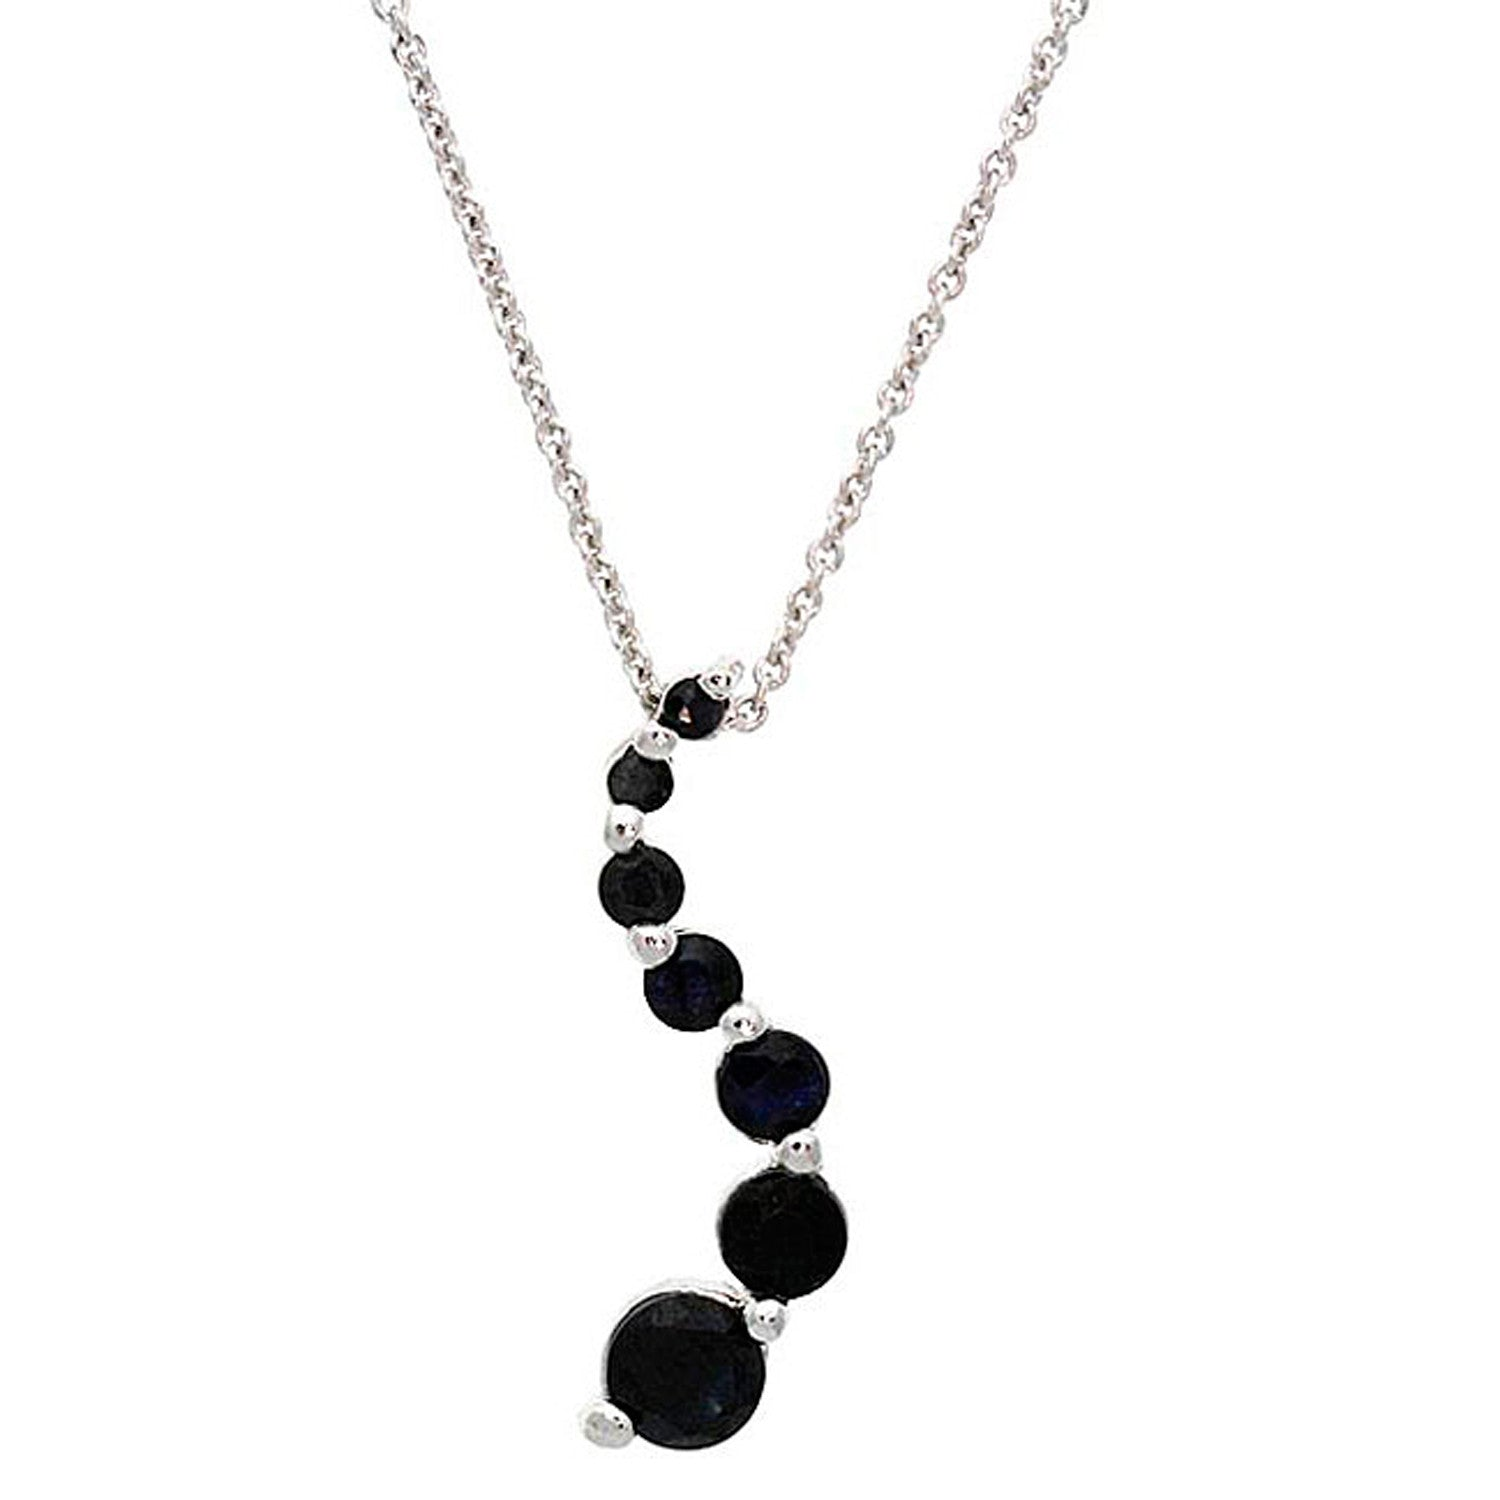 Gemstone 18 Inch Cable Chained Journey Necklace - Silver / Sapphire